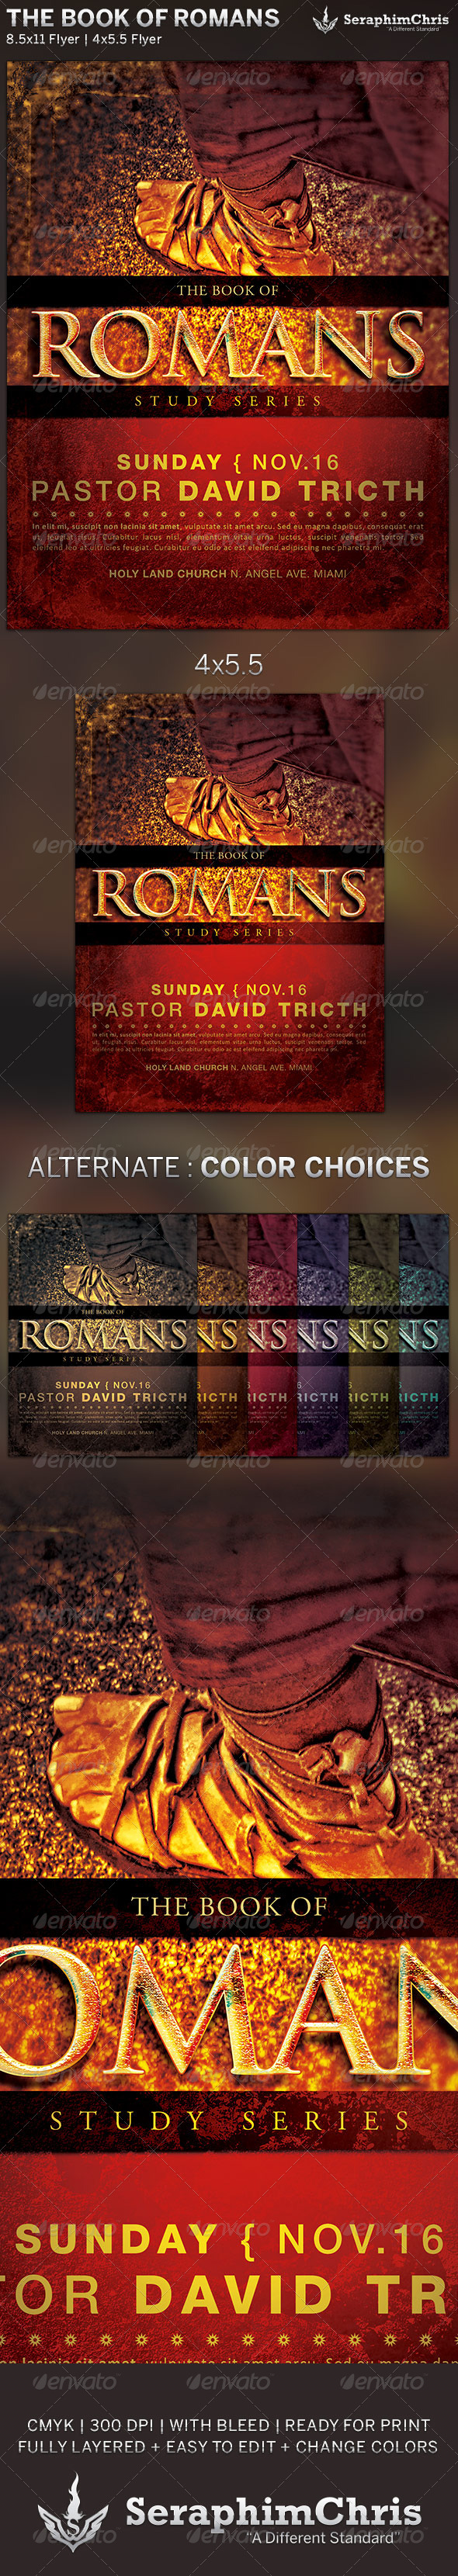 The Book of Romans: Church Flyer Template - Church Flyers